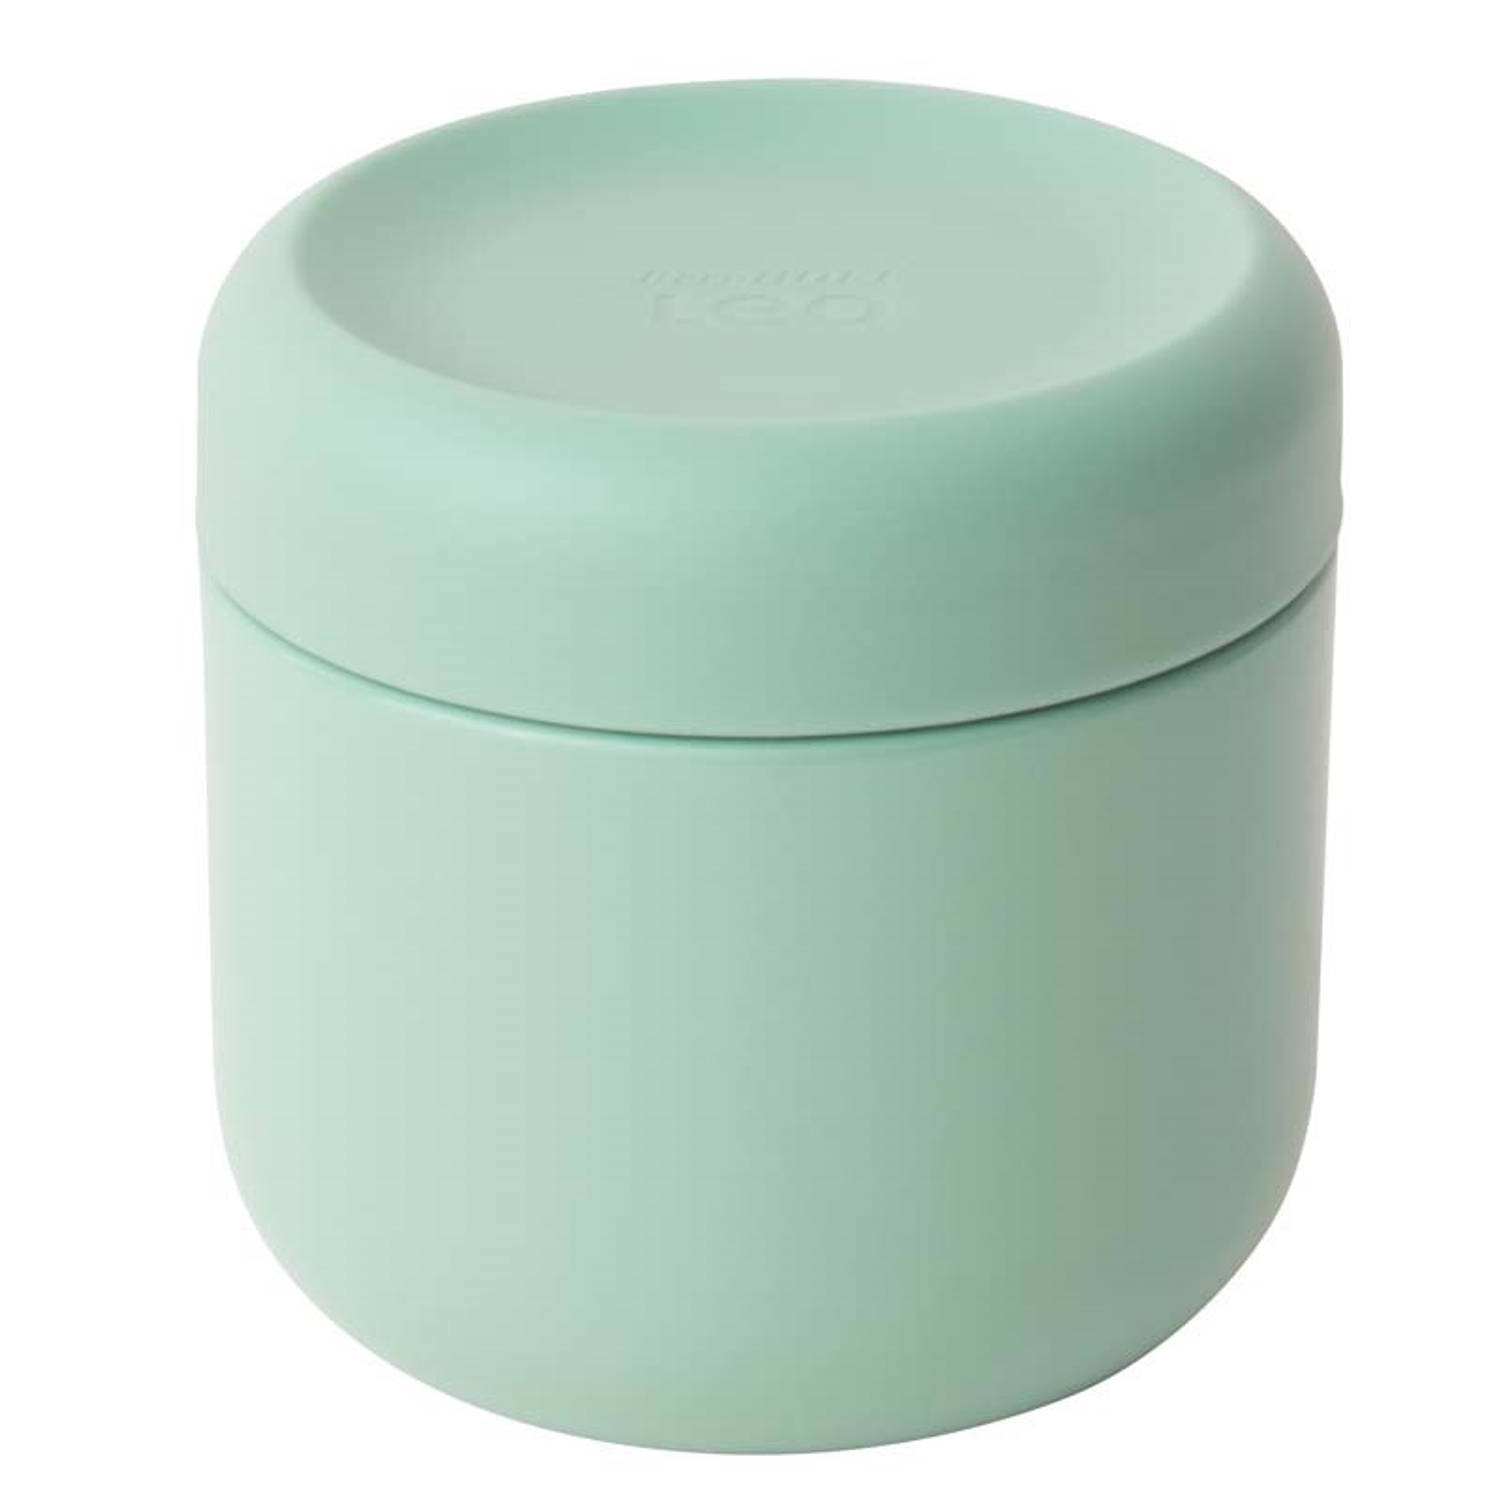 Voedselcontainer 035 L Mint Berghoff Leo